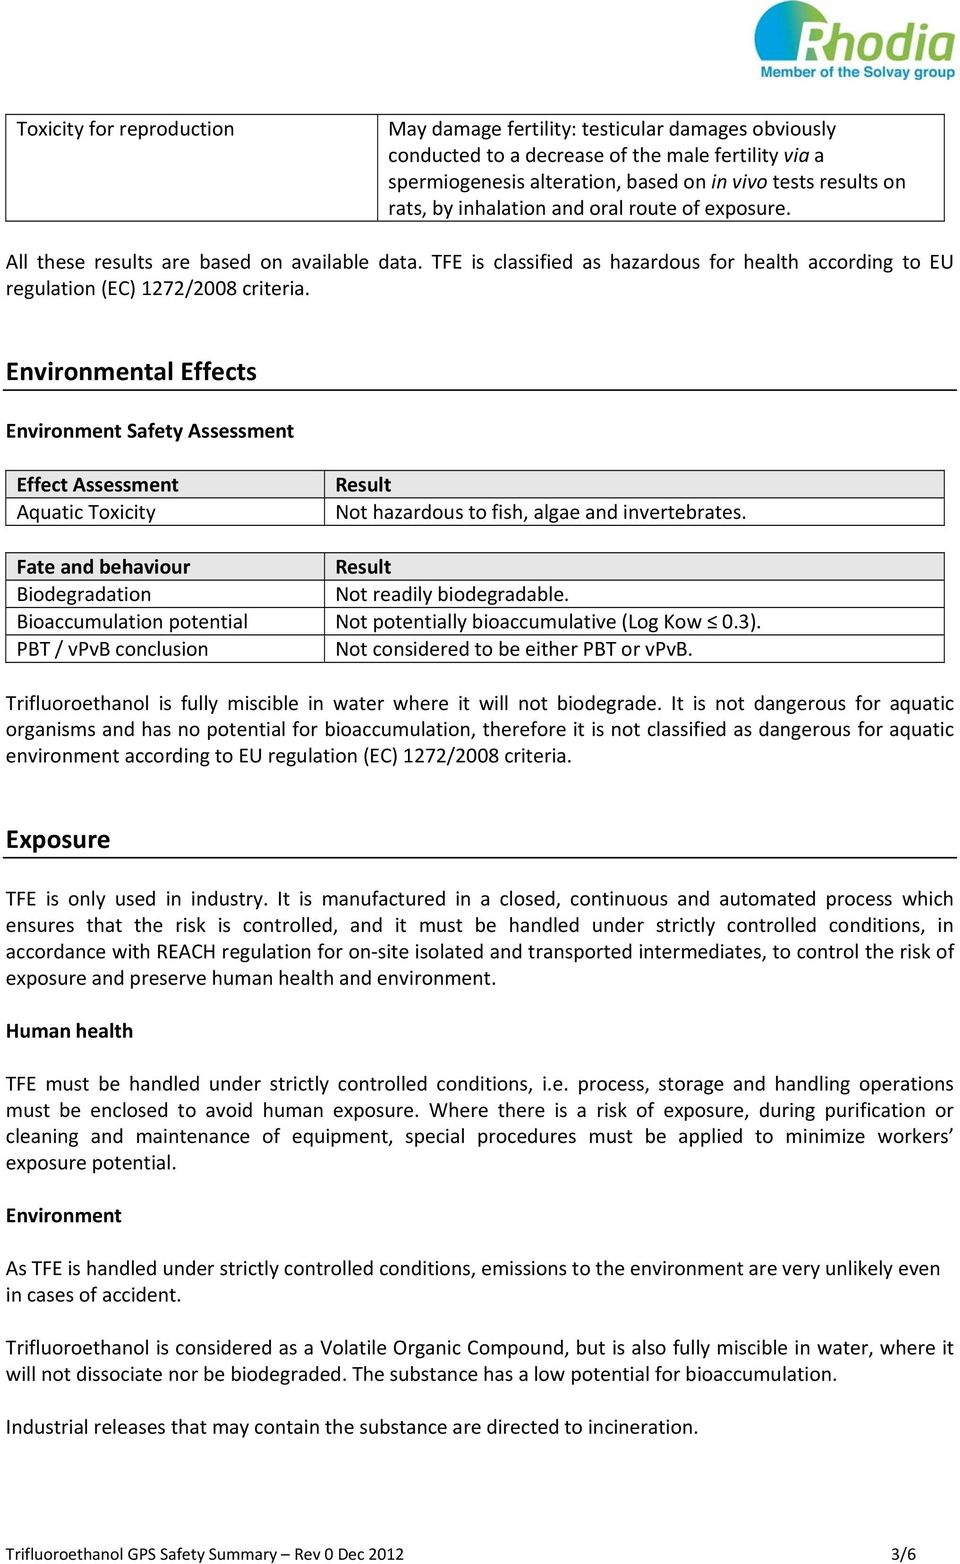 Environmental Effects Environment Safety Assessment Effect Assessment Aquatic Toxicity Not hazardous to fish, algae and invertebrates. Fate and behaviour Biodegradation Not readily biodegradable.